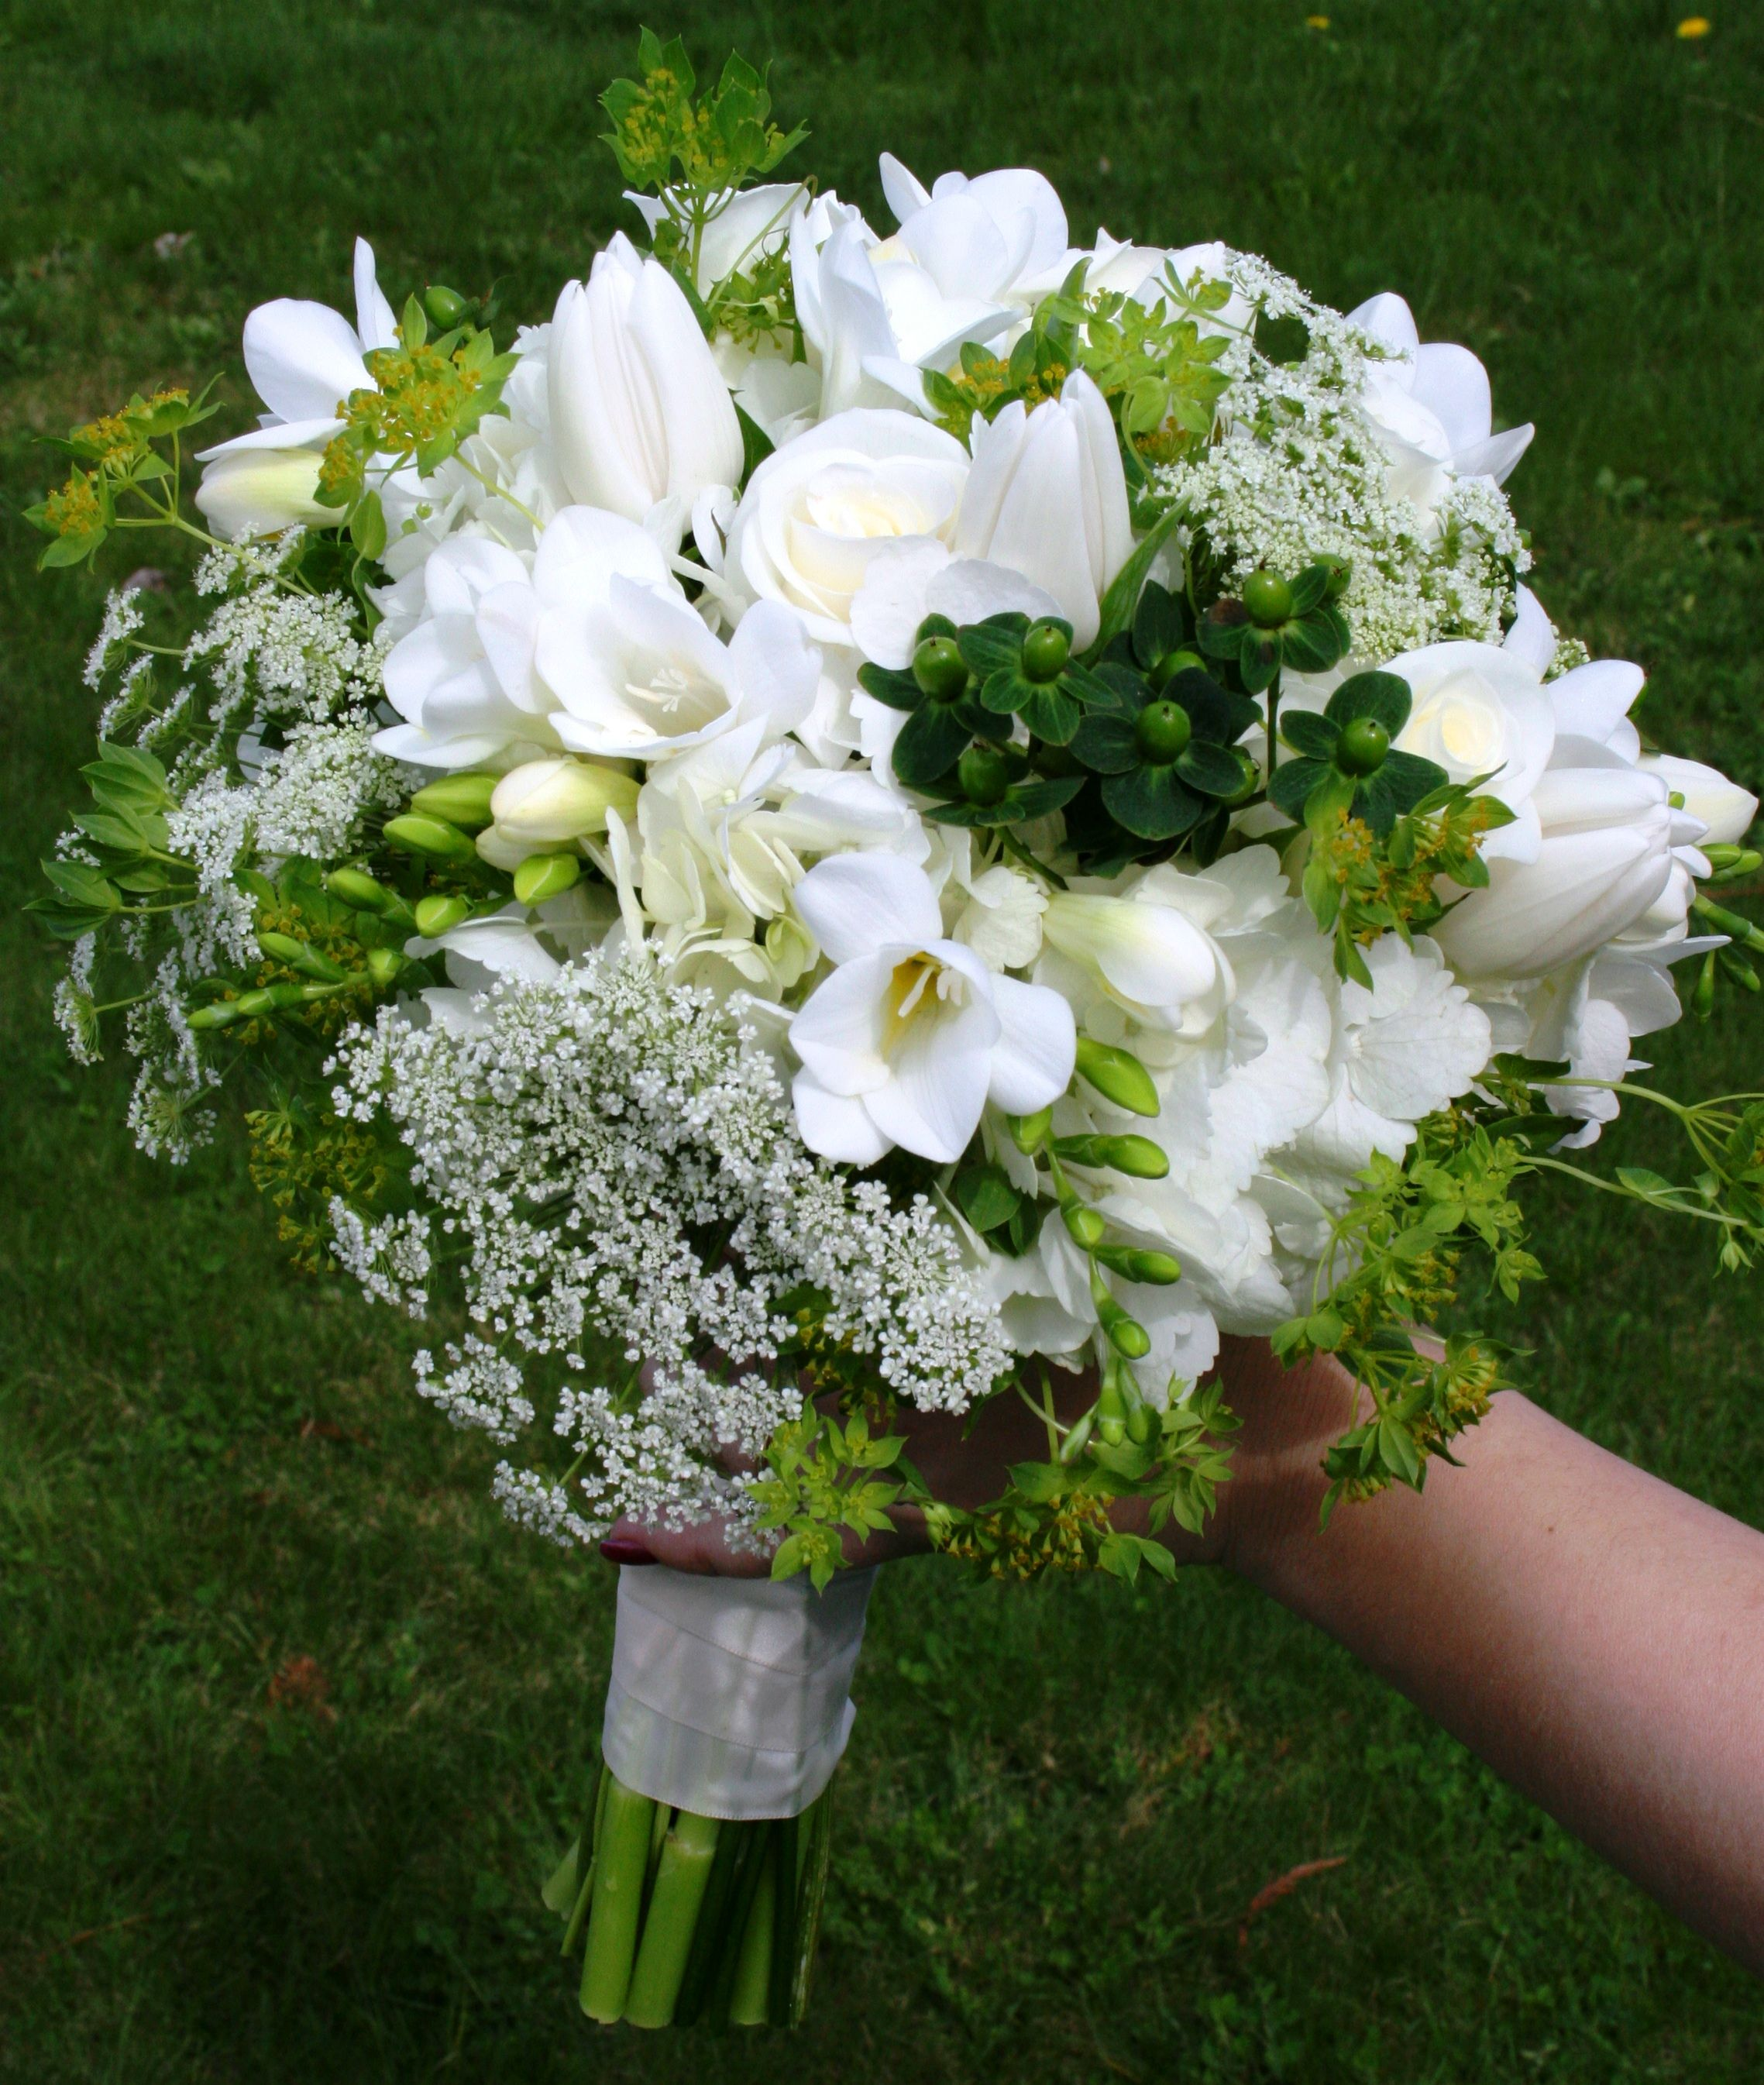 Bridal bouquet of white roses queen annes lace green and white white flowers and green berries dhlflorist Image collections